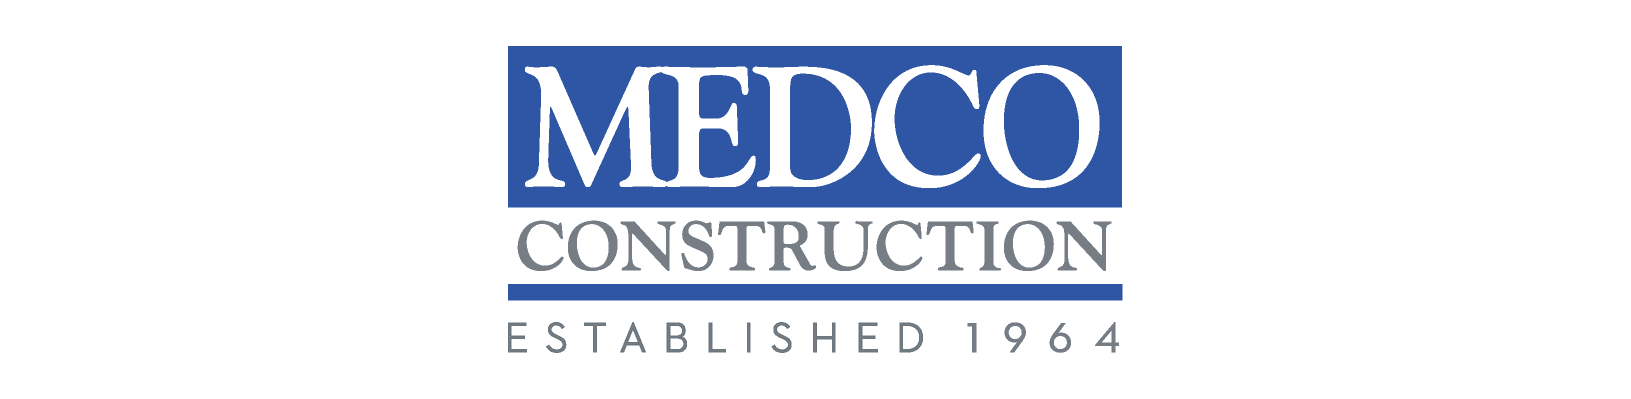 MEDCO Preconstruction